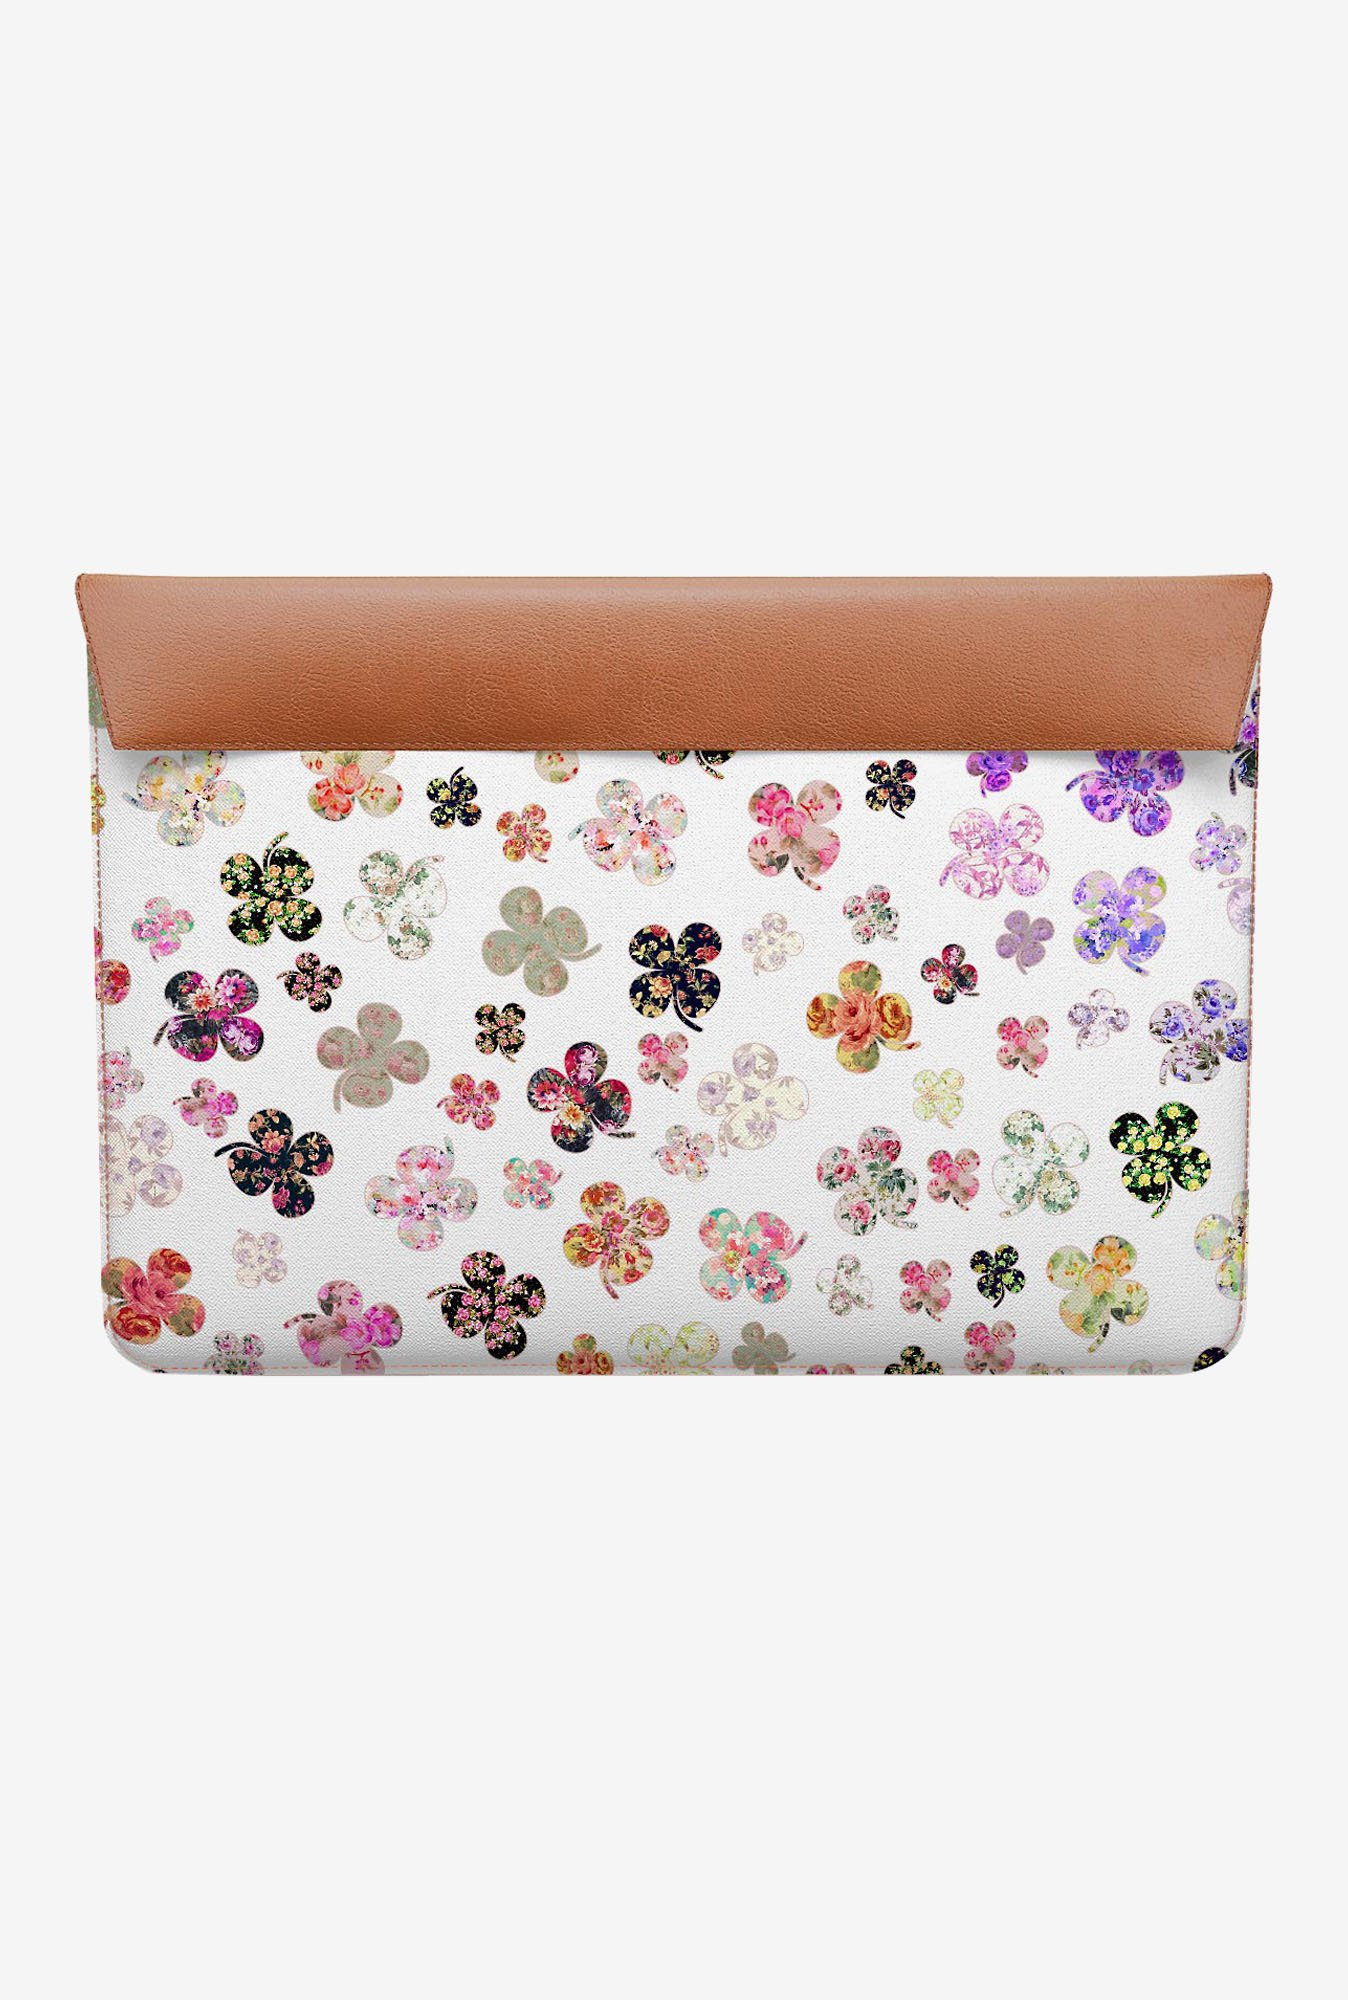 DailyObjects Floral Clovers MacBook Pro 13 Envelope Sleeve